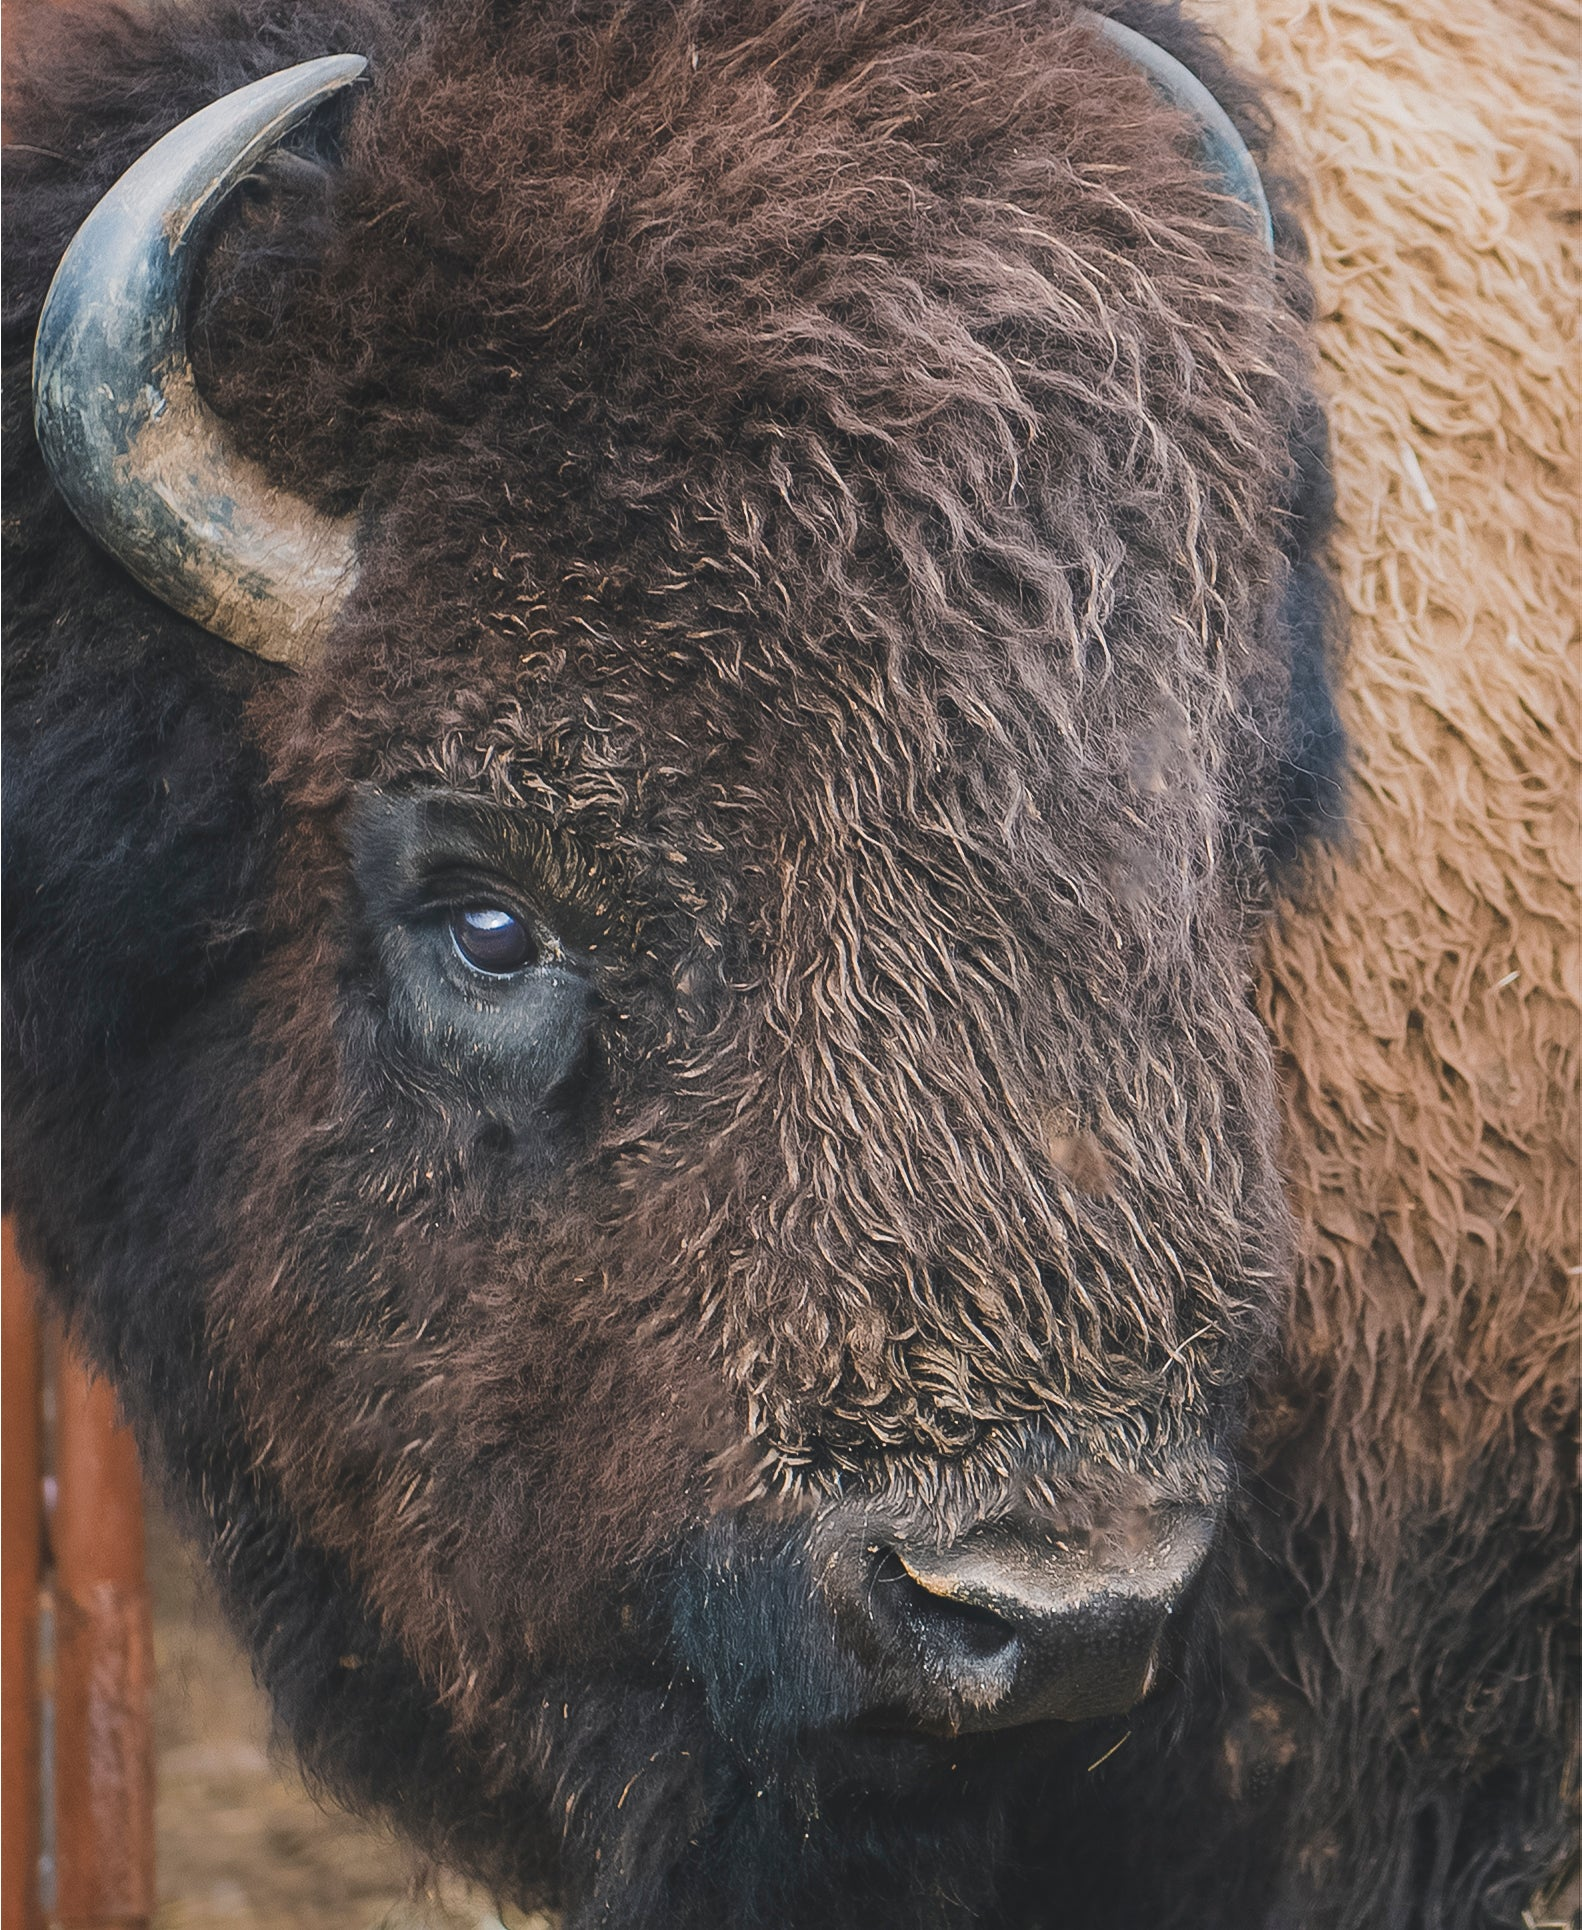 Our bison love their NJ farm...and treats!